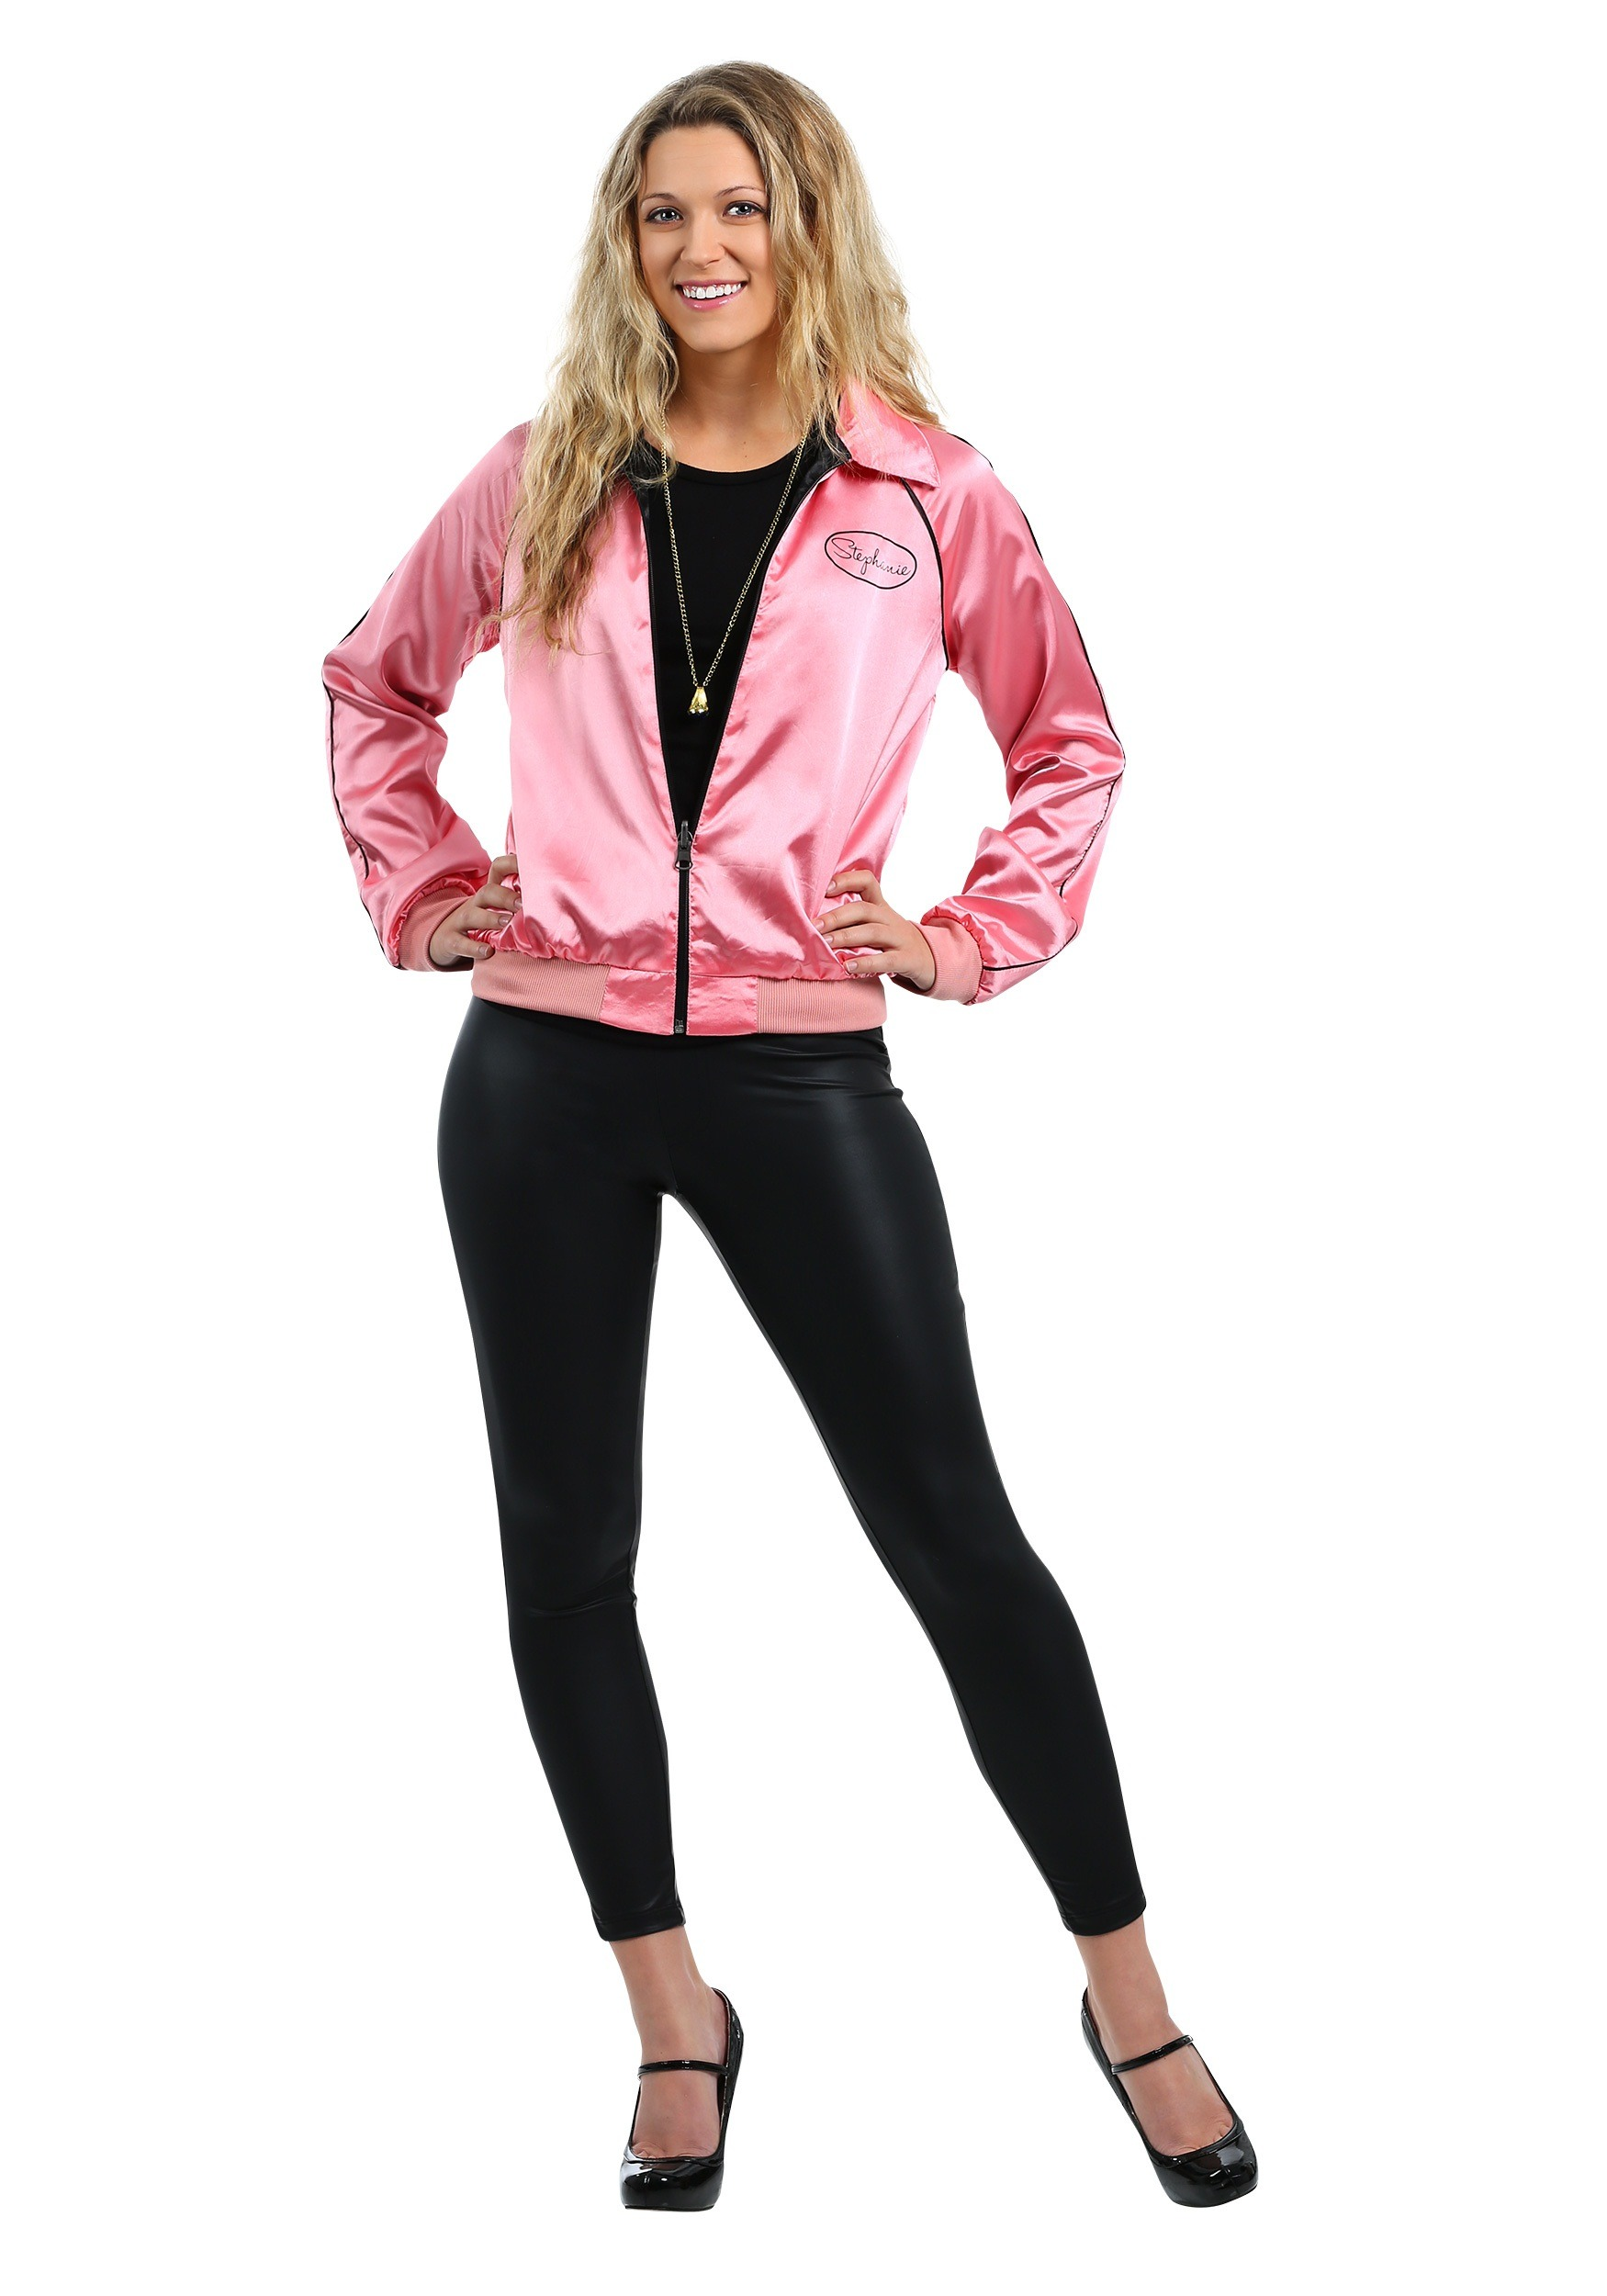 Stephanie's Pink Ladies Jacket Costume from Grease 2